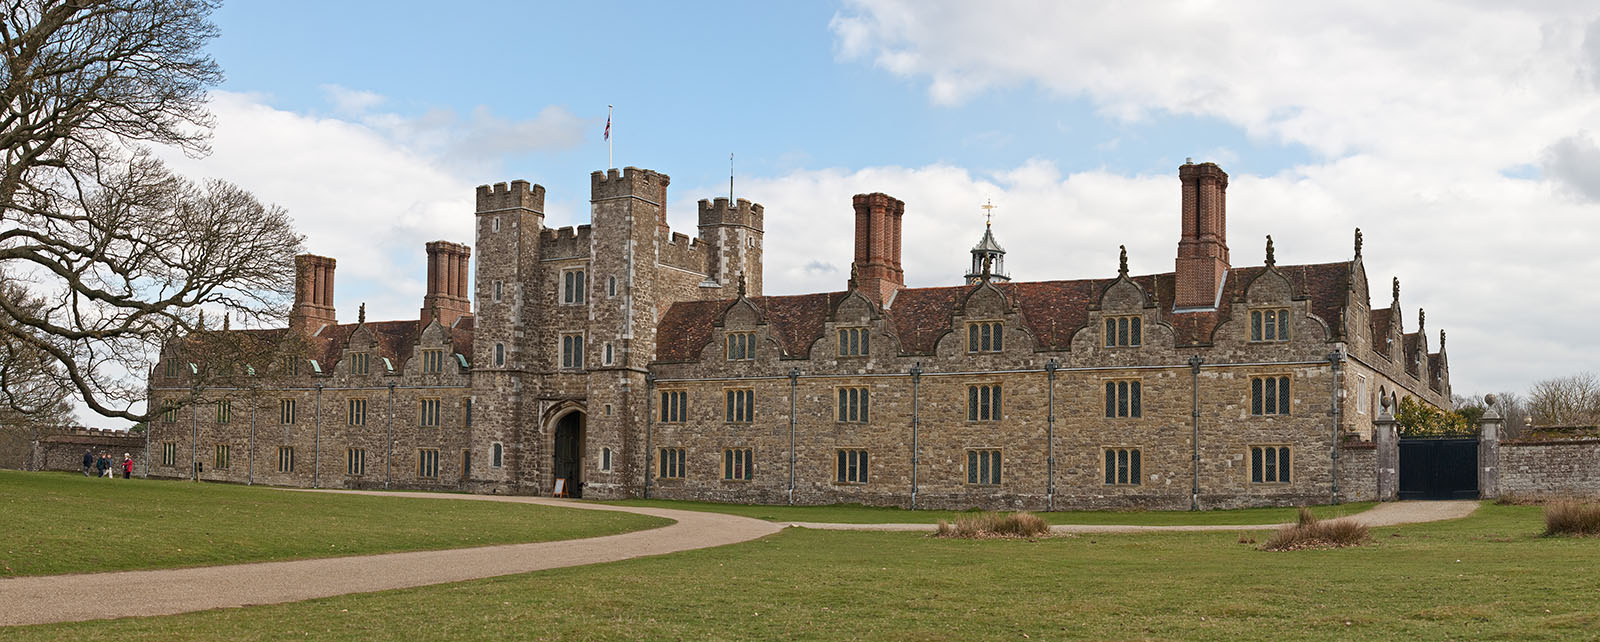 Knole House - an English country house in the civil parish of Sevenoaks.